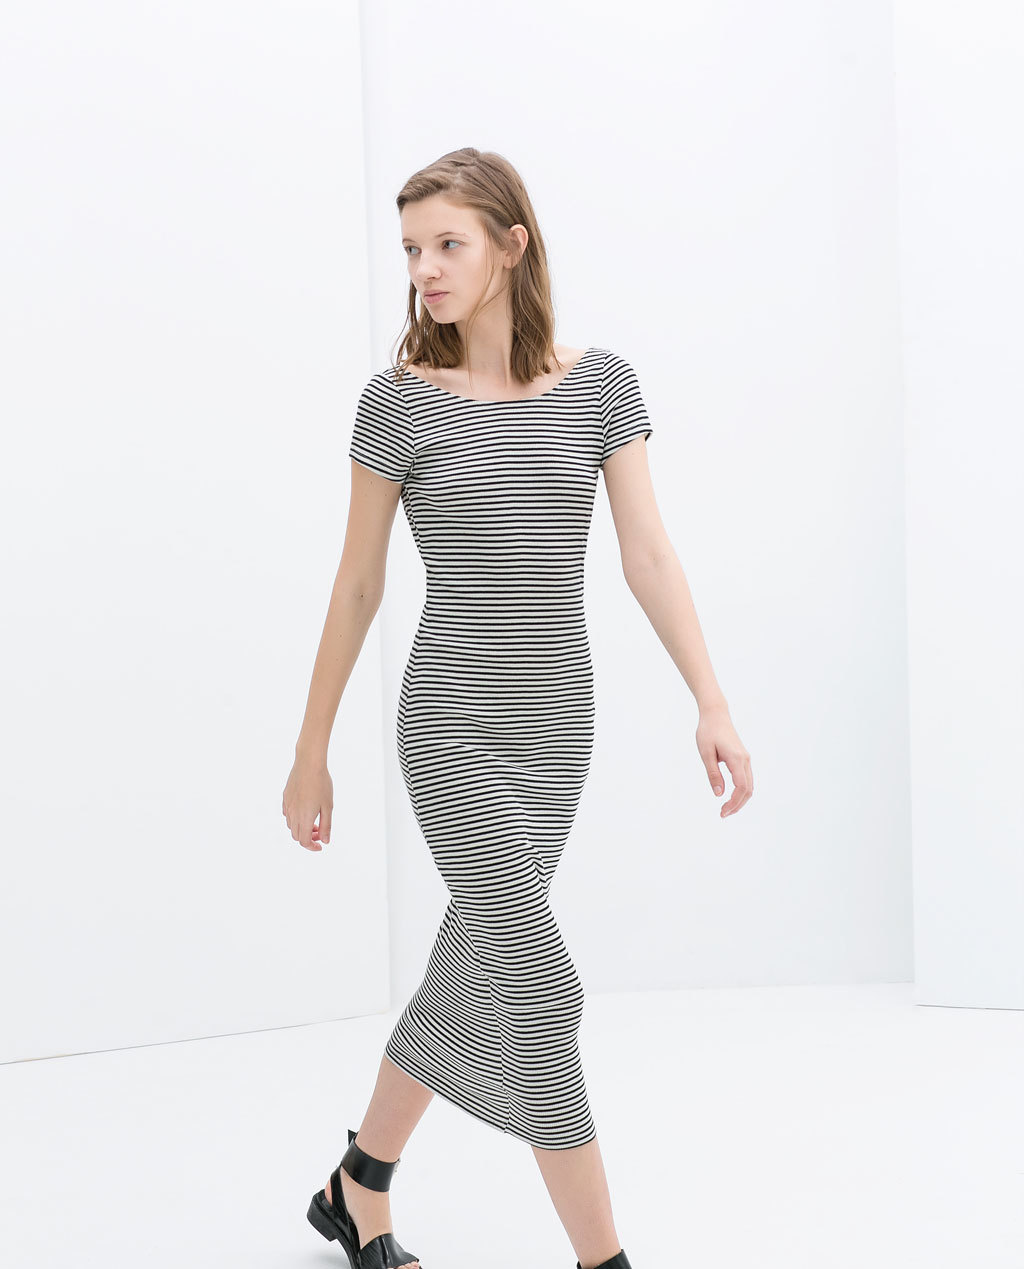 Striped Long Dress With Low Back - style: t-shirt; length: calf length; neckline: round neck; pattern: horizontal stripes; back detail: back revealing; secondary colour: ivory/cream; predominant colour: navy; occasions: casual, evening; fit: body skimming; fibres: cotton - mix; sleeve length: short sleeve; sleeve style: standard; texture group: jersey - clingy; pattern type: fabric; pattern size: standard; season: s/s 2014